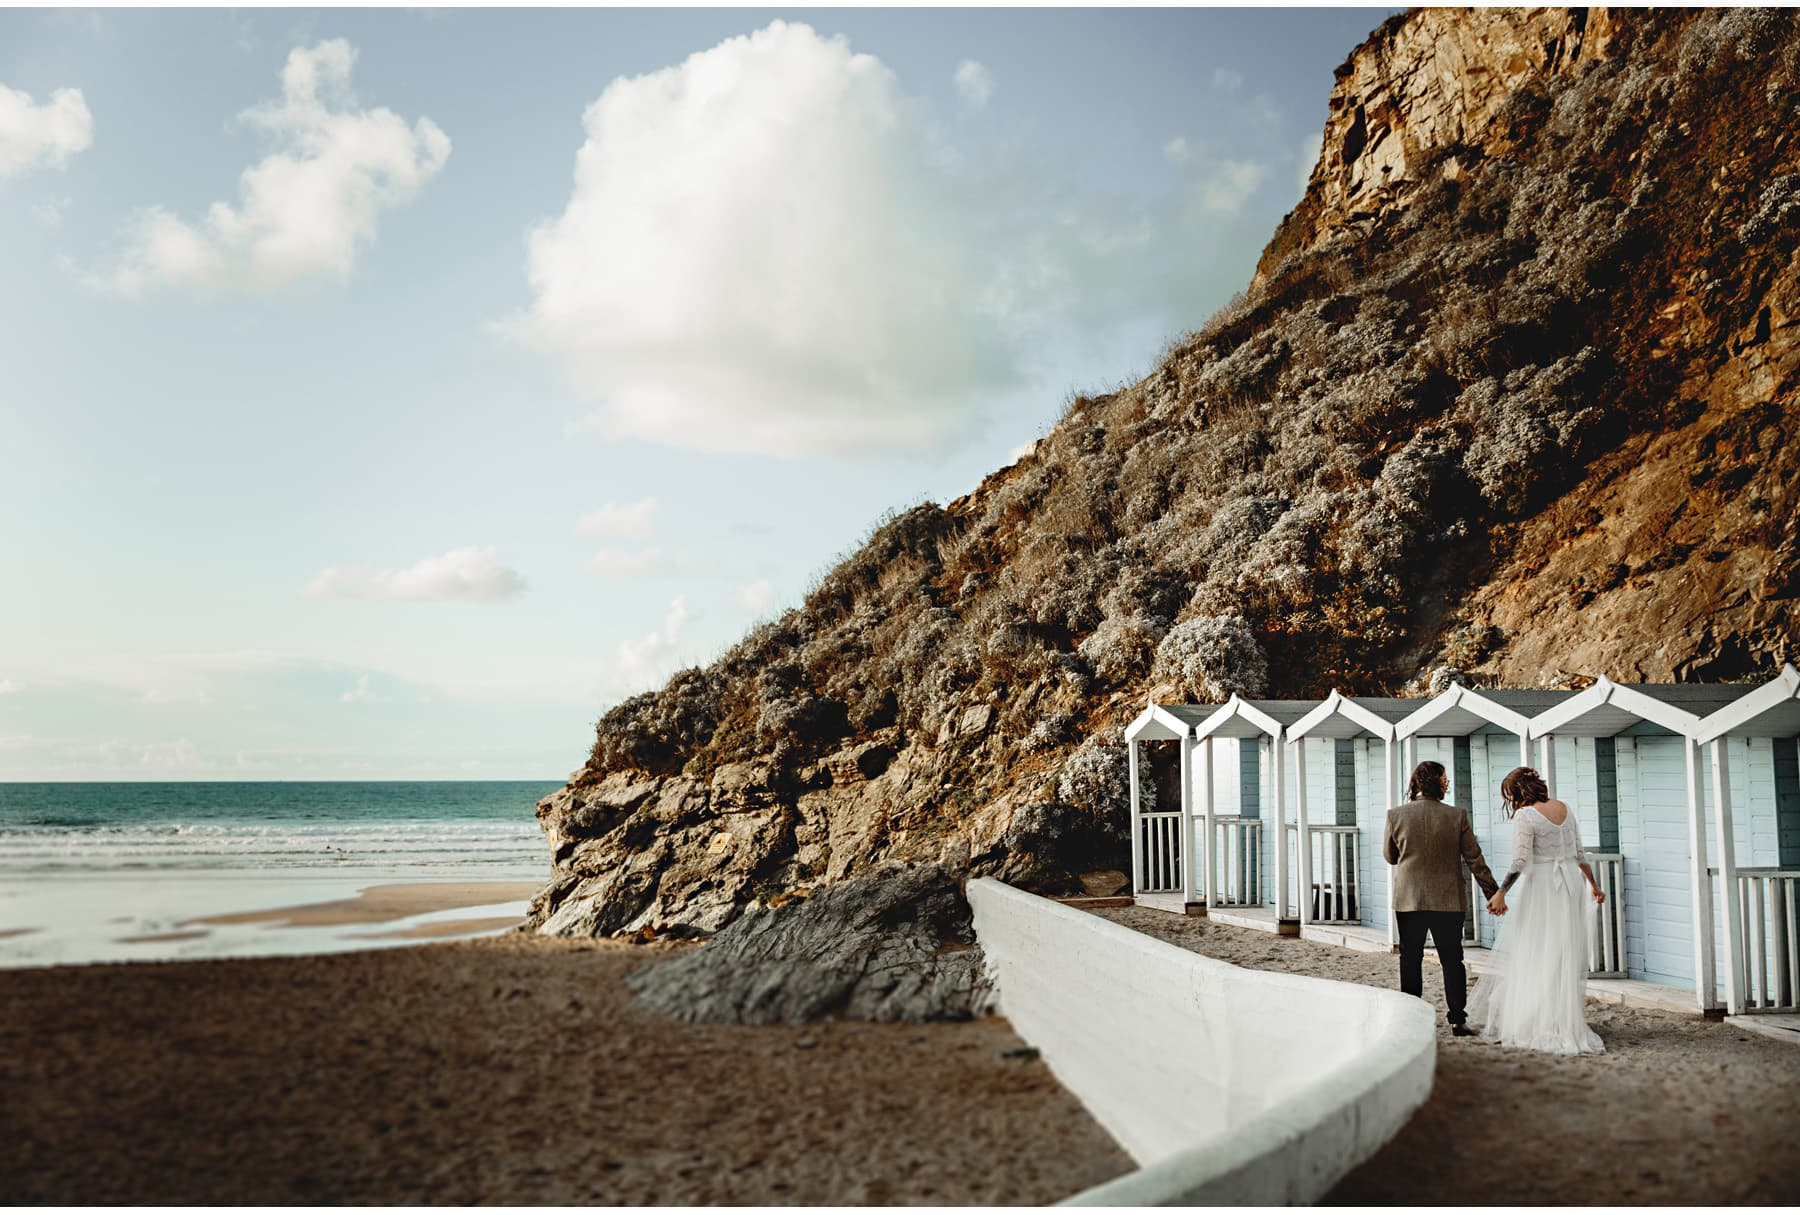 the bride & groom by the beach huts